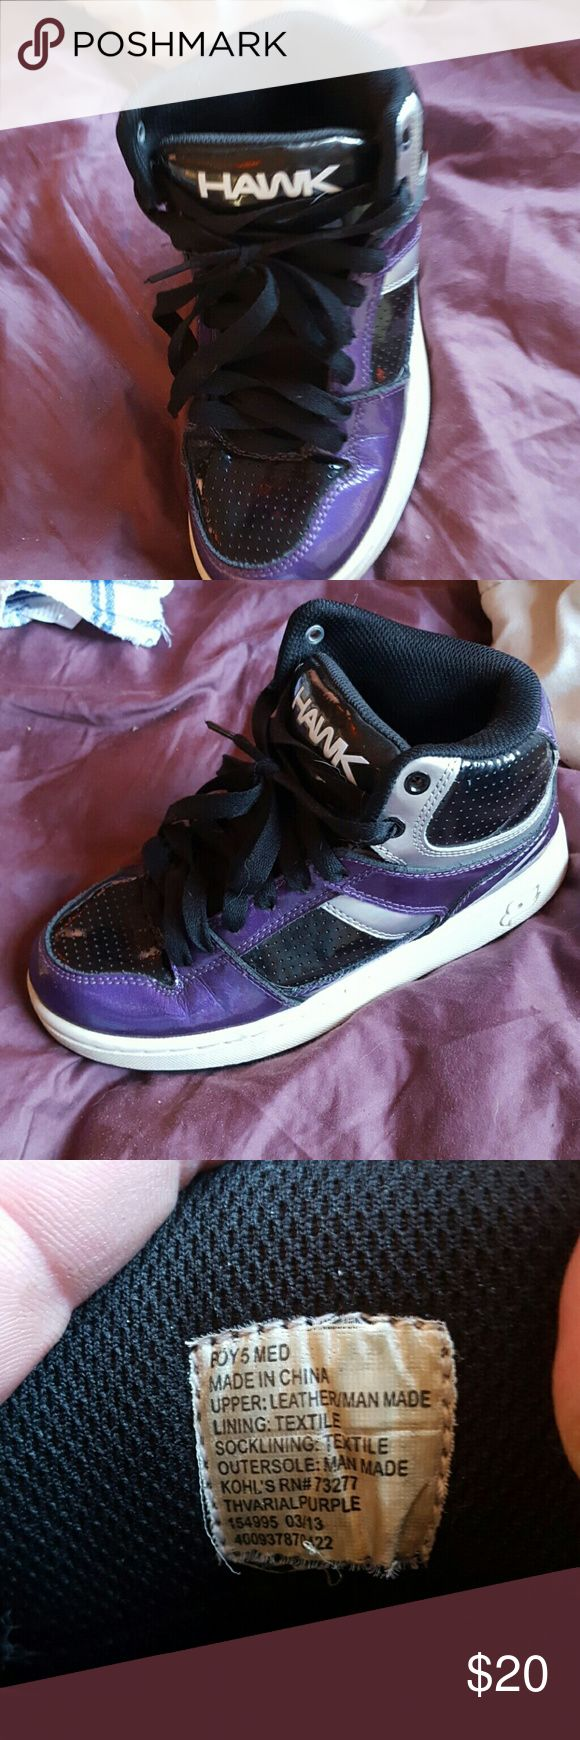 Tony Hawk skate shoes Great condition not other than normal creasing from wear. Shiny black and purple vinyl like material.  Old school look Hawke & Co Shoes Sneakers